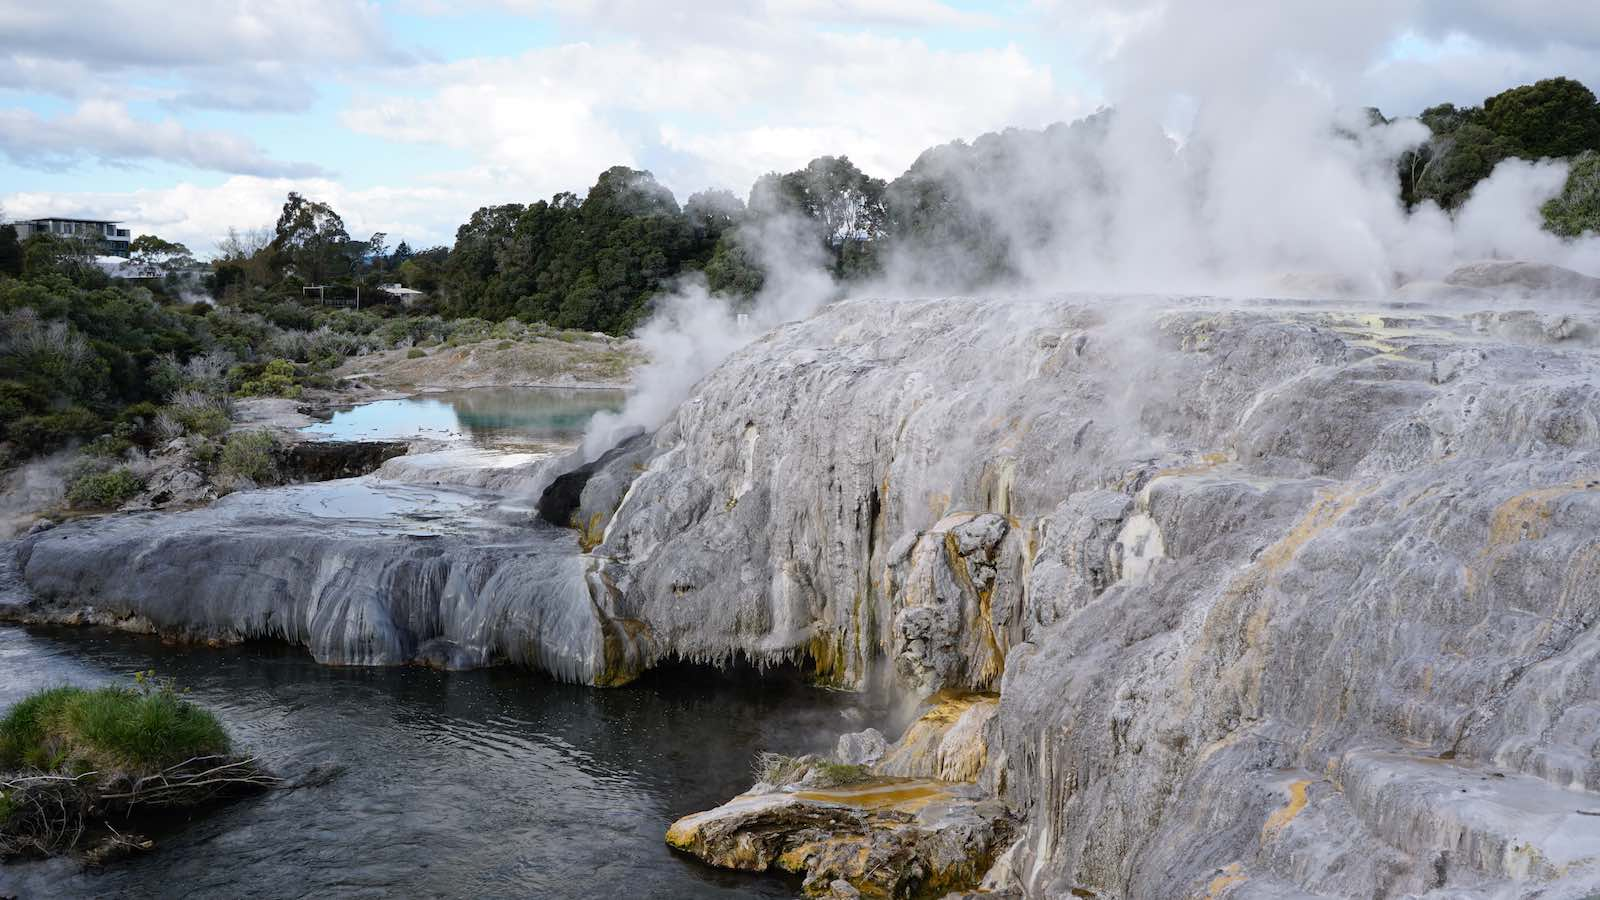 Also some interesting landscapes with gysers and steam spewing out of rock features